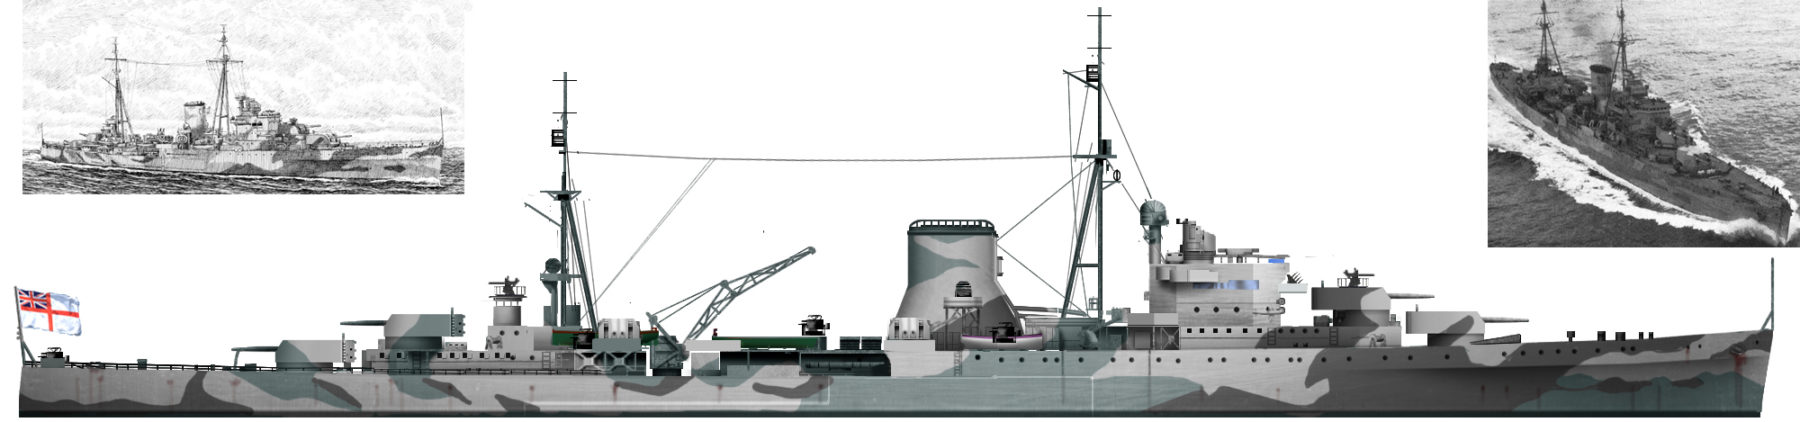 Authors HD illustration of HMS neptune in 1944